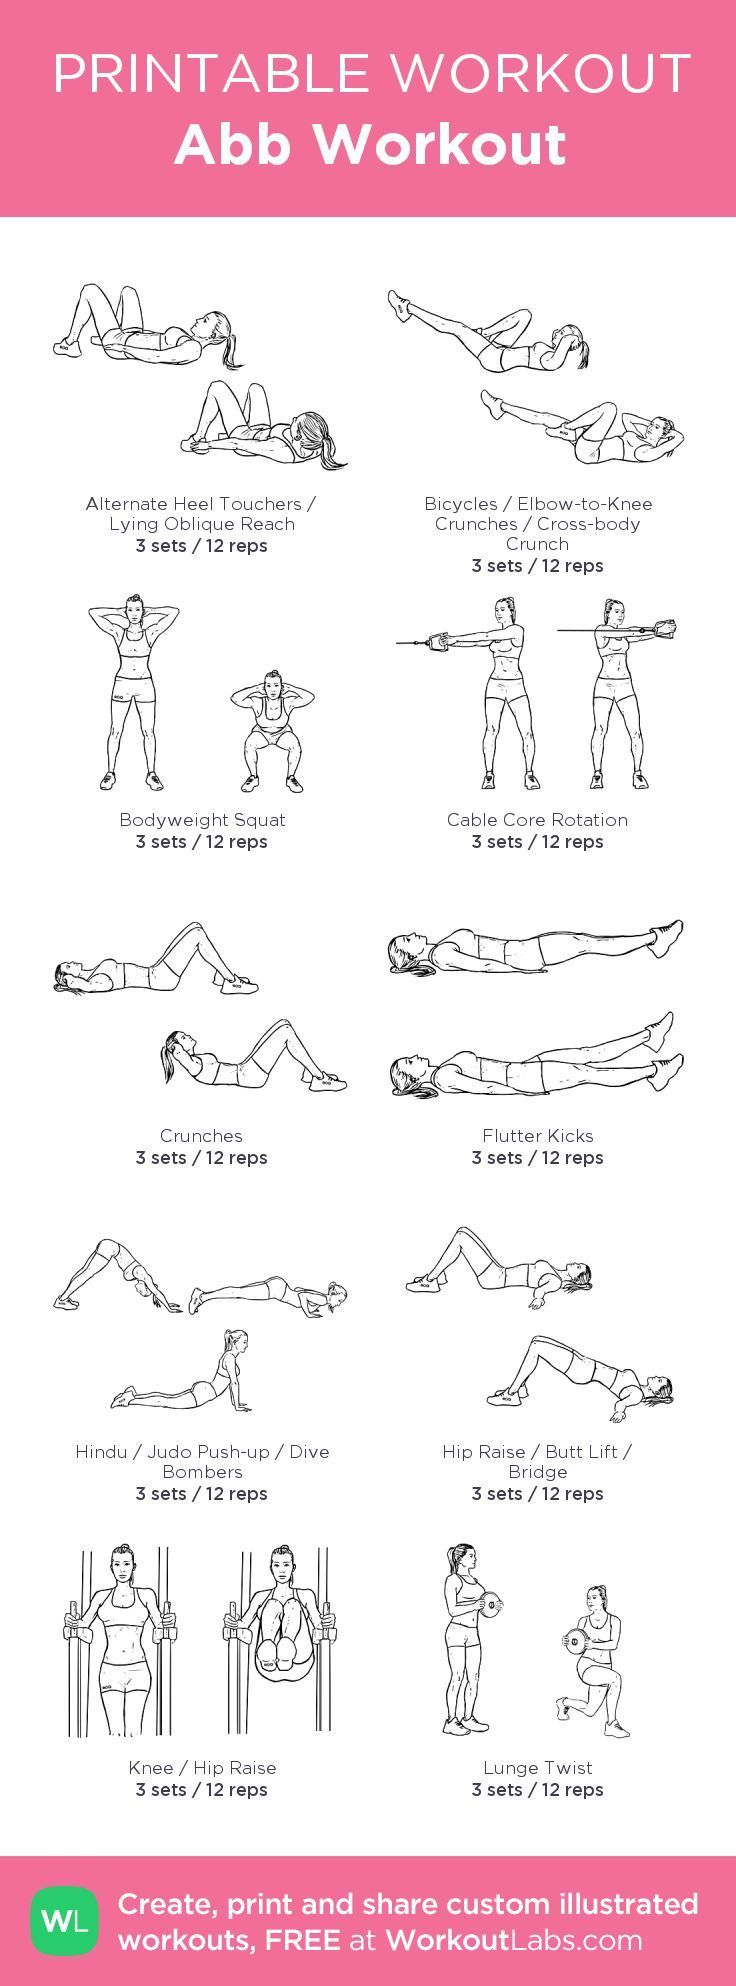 Abb Workout: my visual workout created at WorkoutLabs.com Click through to … -…